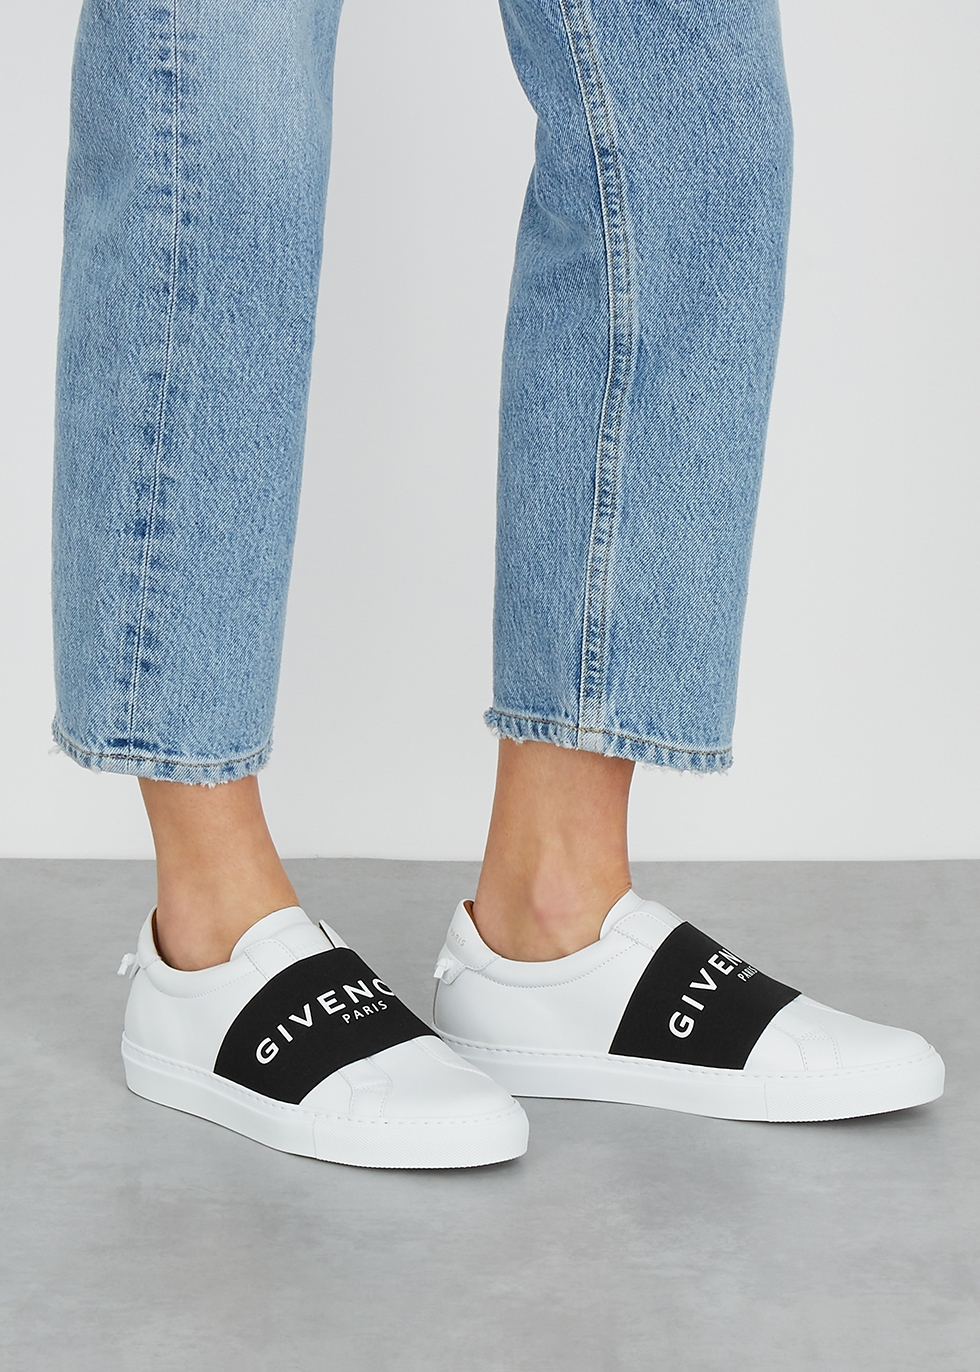 givenchy white sneakers womens